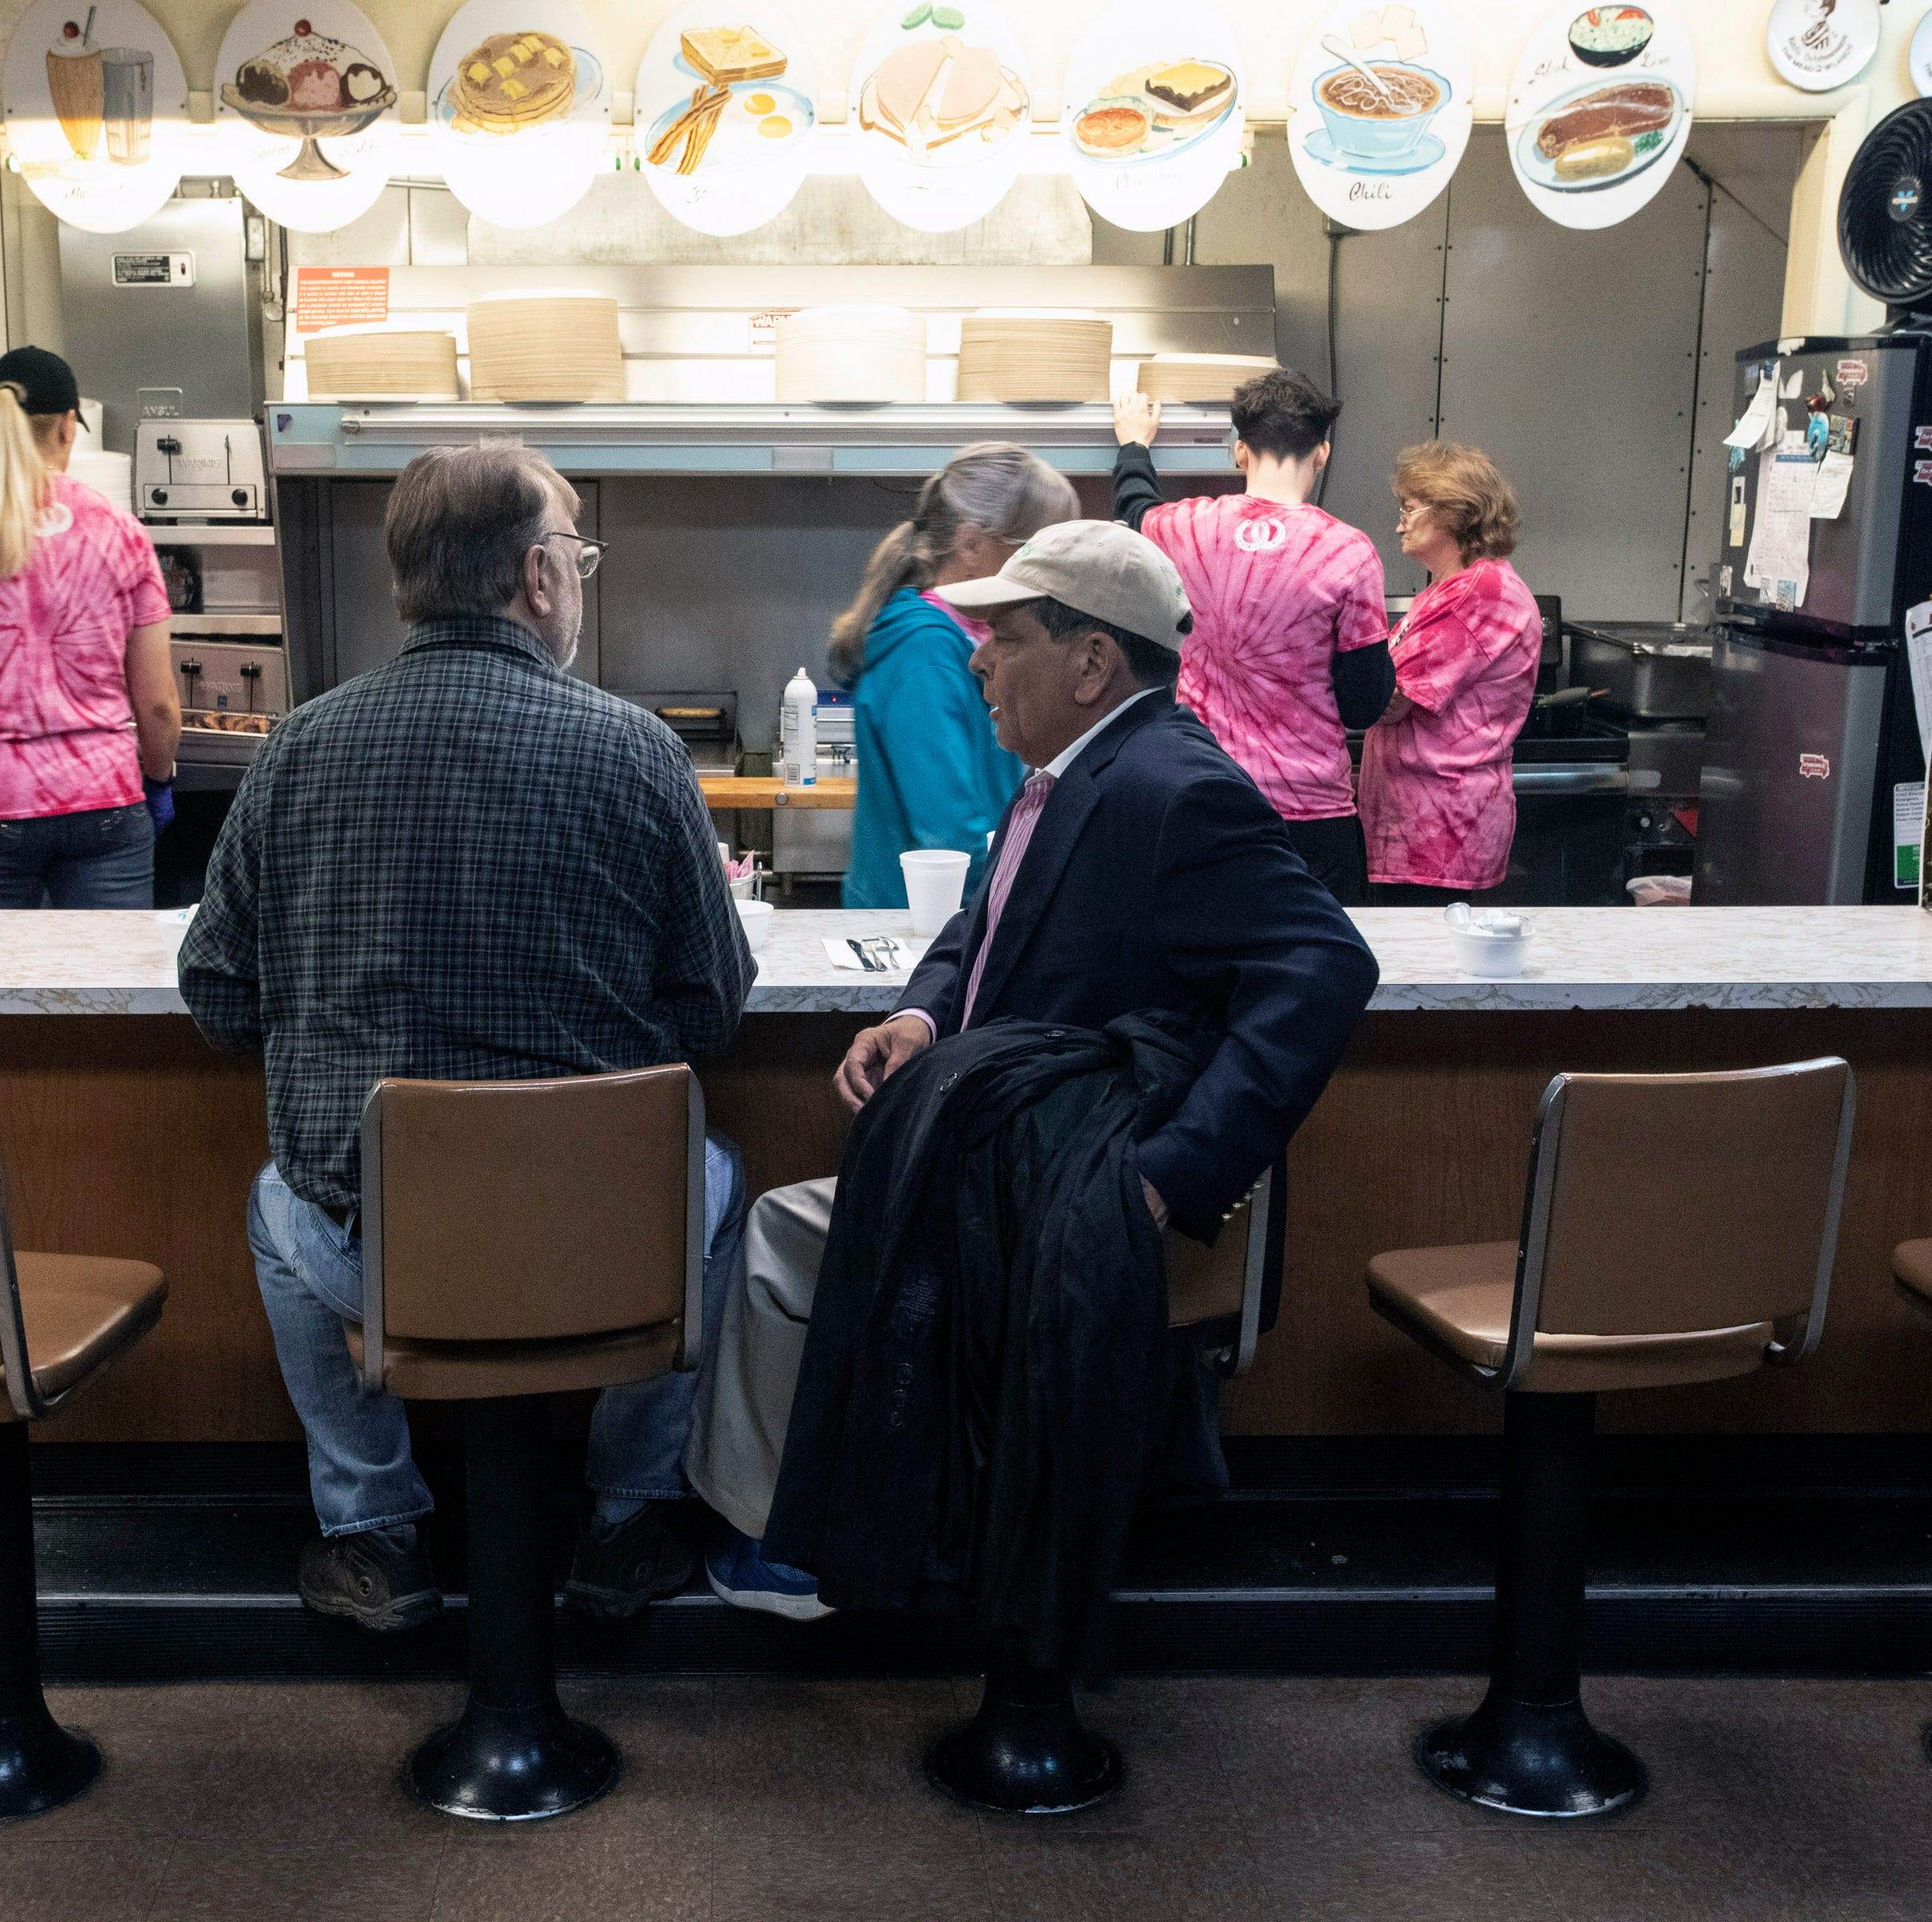 Wagner's Pharmacy: Where Derby fans eat breakfast and rub elbows with tradition